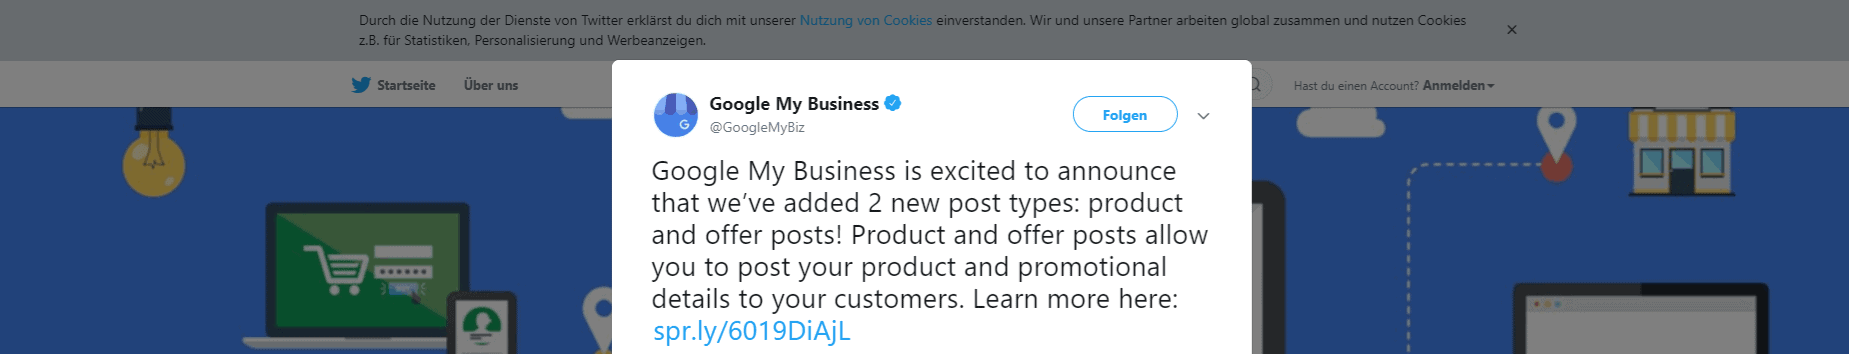 Google My Business Produkte, Google My Business Produkte